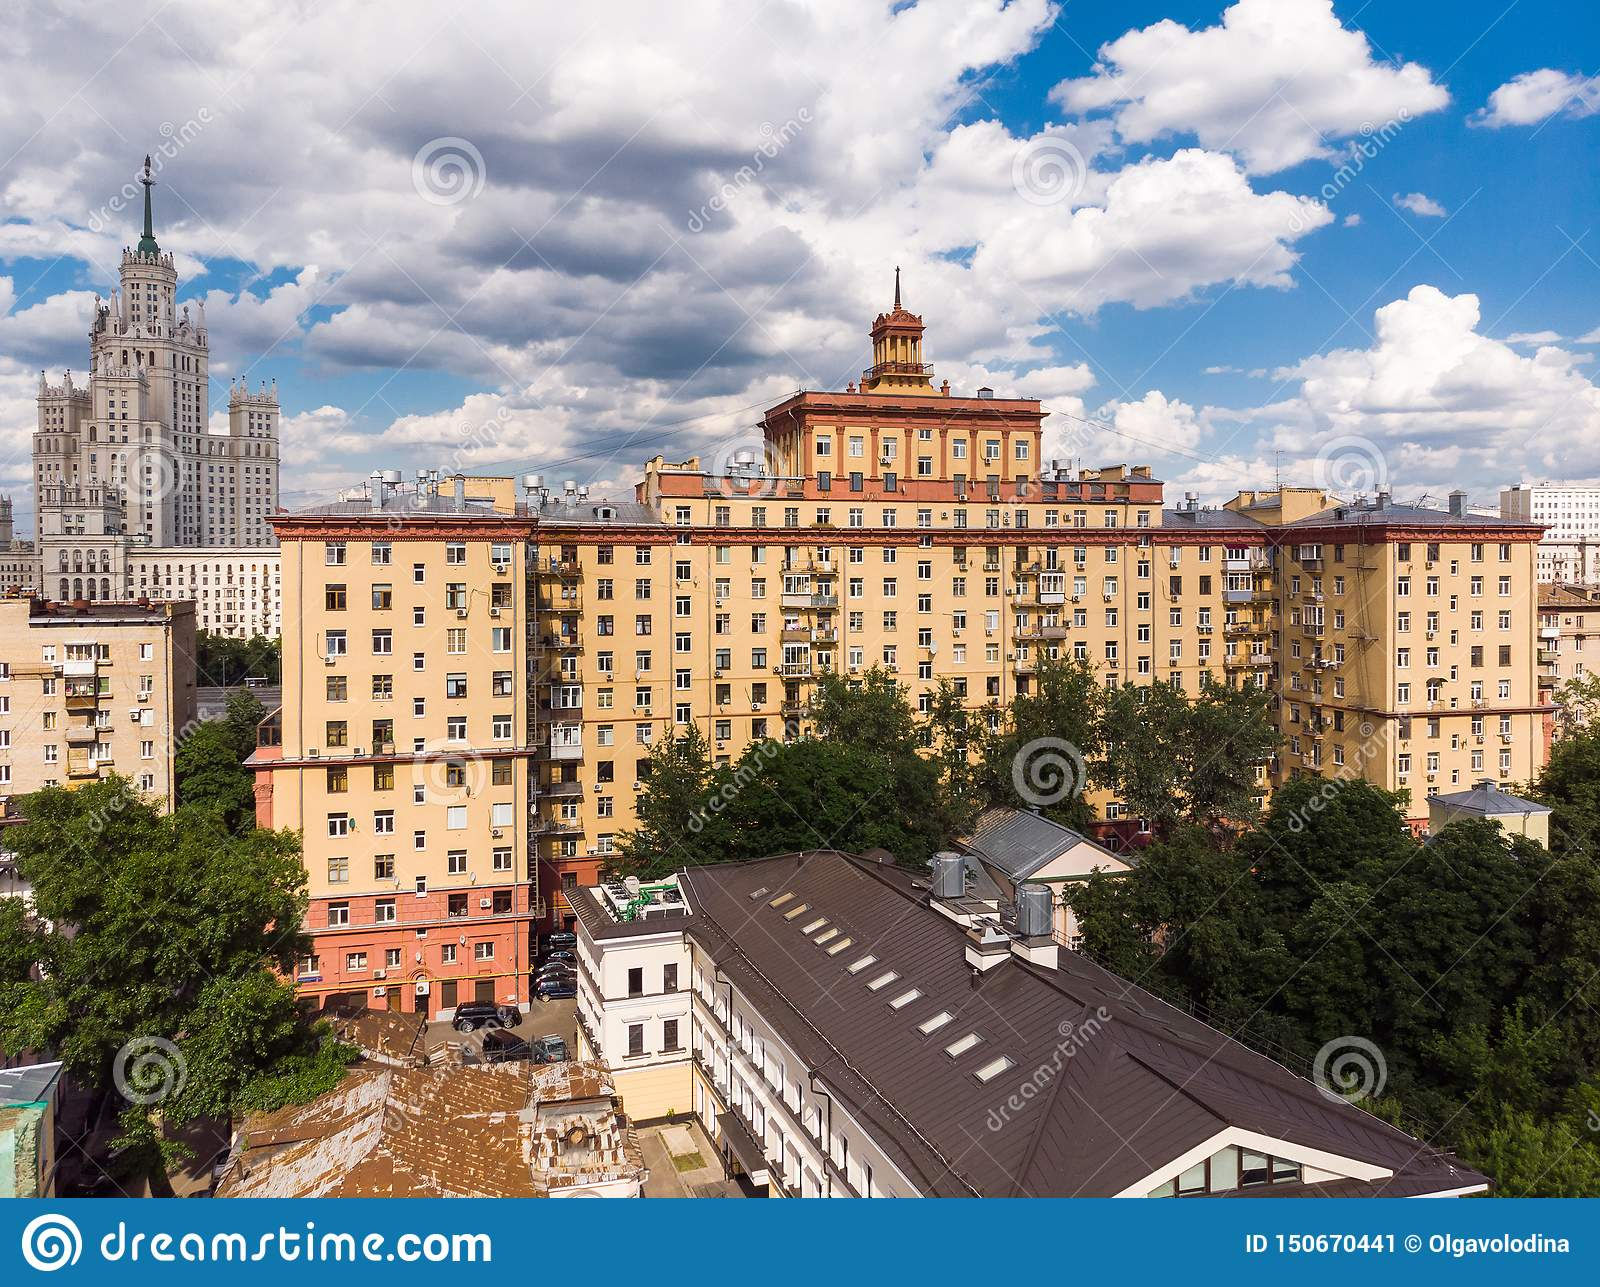 Top view of old houses in center in Moscow, Russia